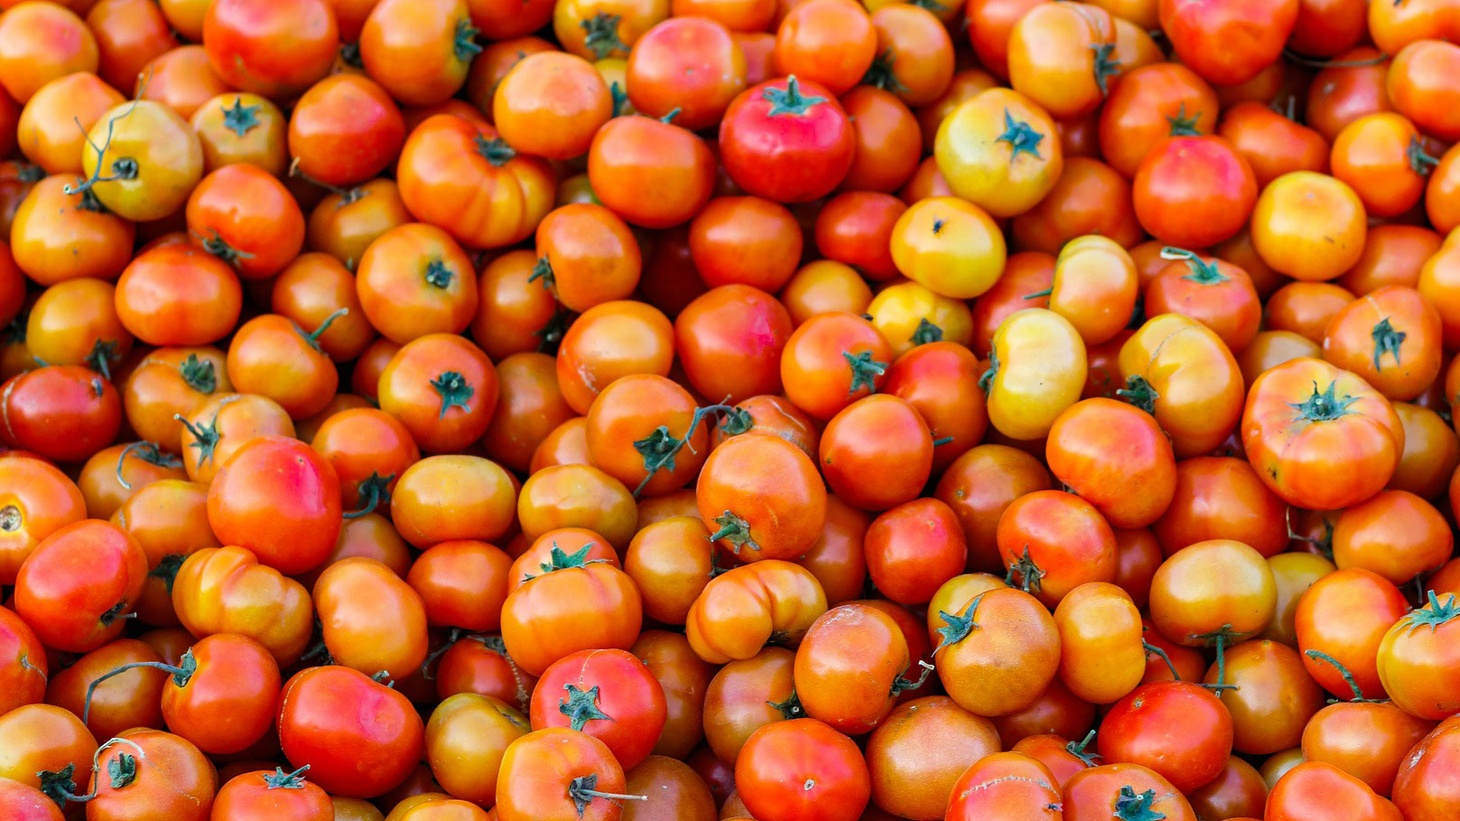 """Conditions for agricultural laborers in the US have been described by the UN as """"appalling."""" But tomato workers in Florida have won their freedom from virtual slave labor."""